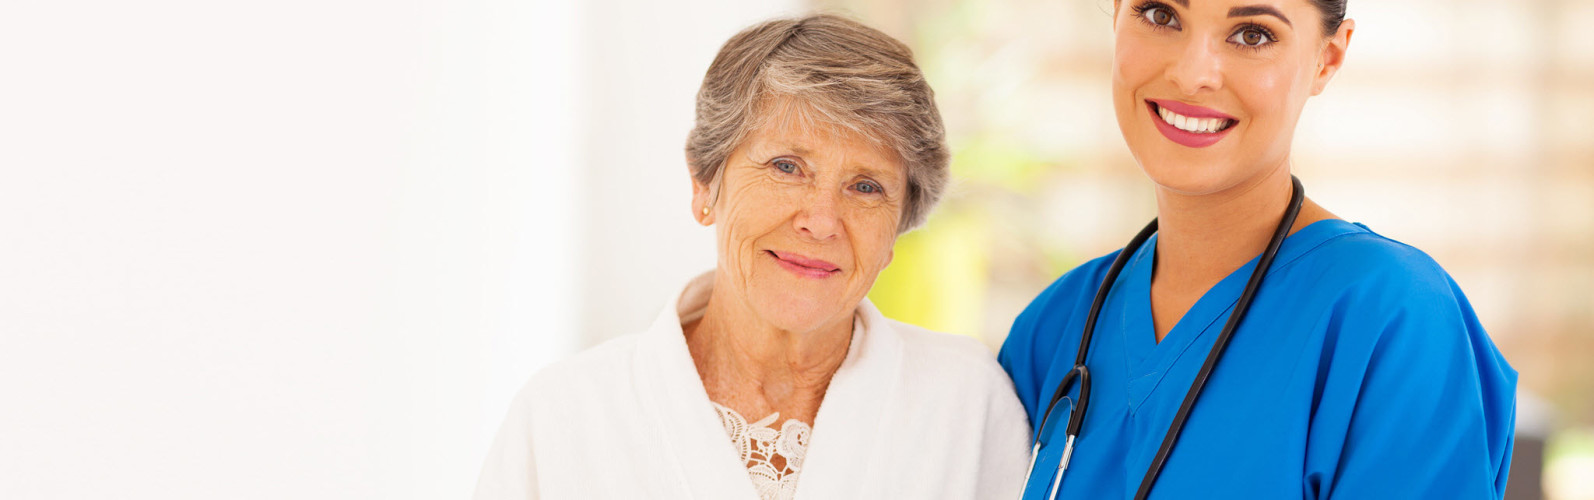 We are one of the leading providers of home care and health assistance in Nashville TN